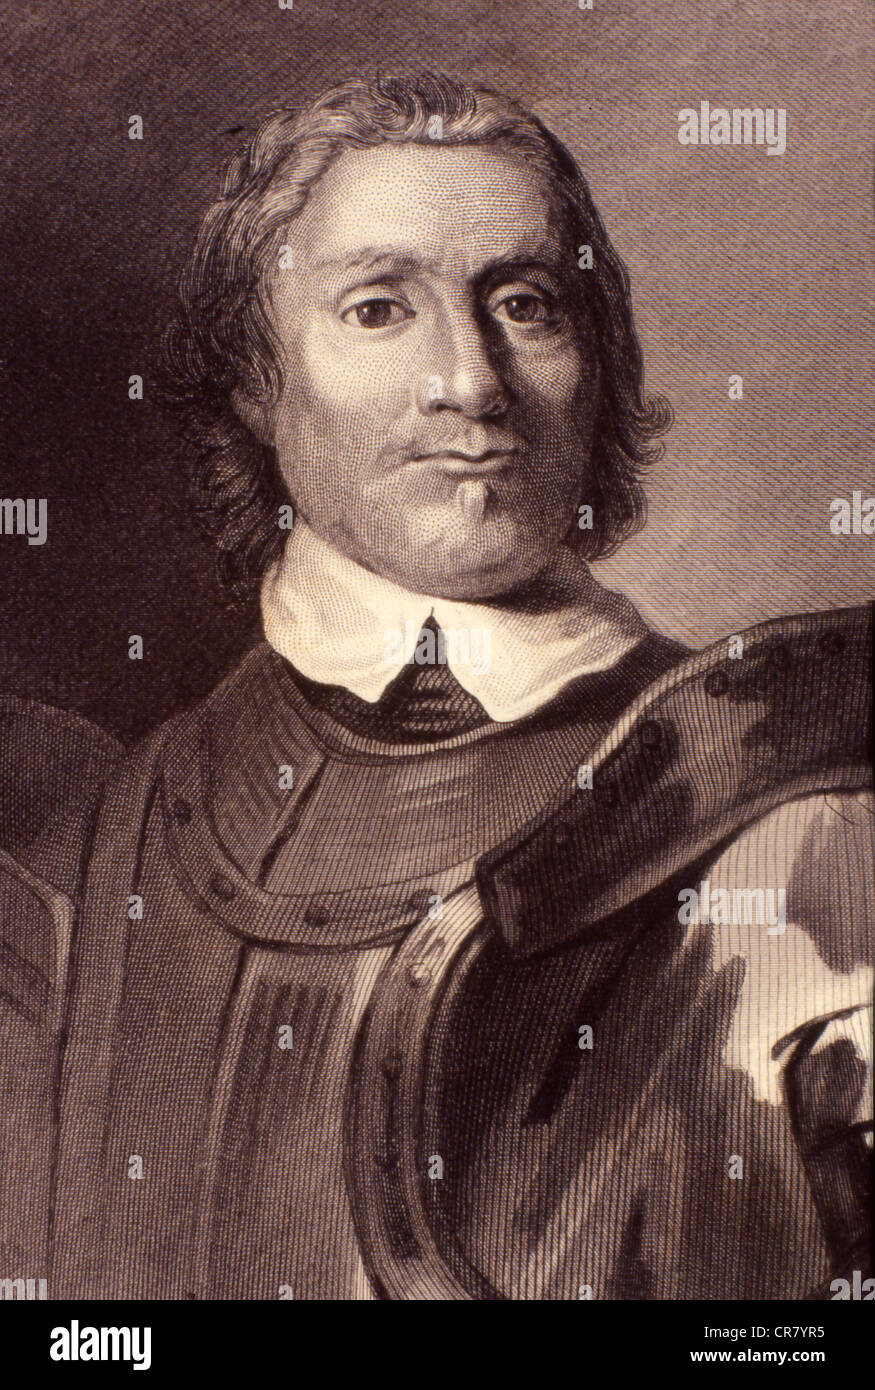 Oliver Cromwell, English statesman and politician, 1599 - 1658, historic engraving, 1865 - Stock Image